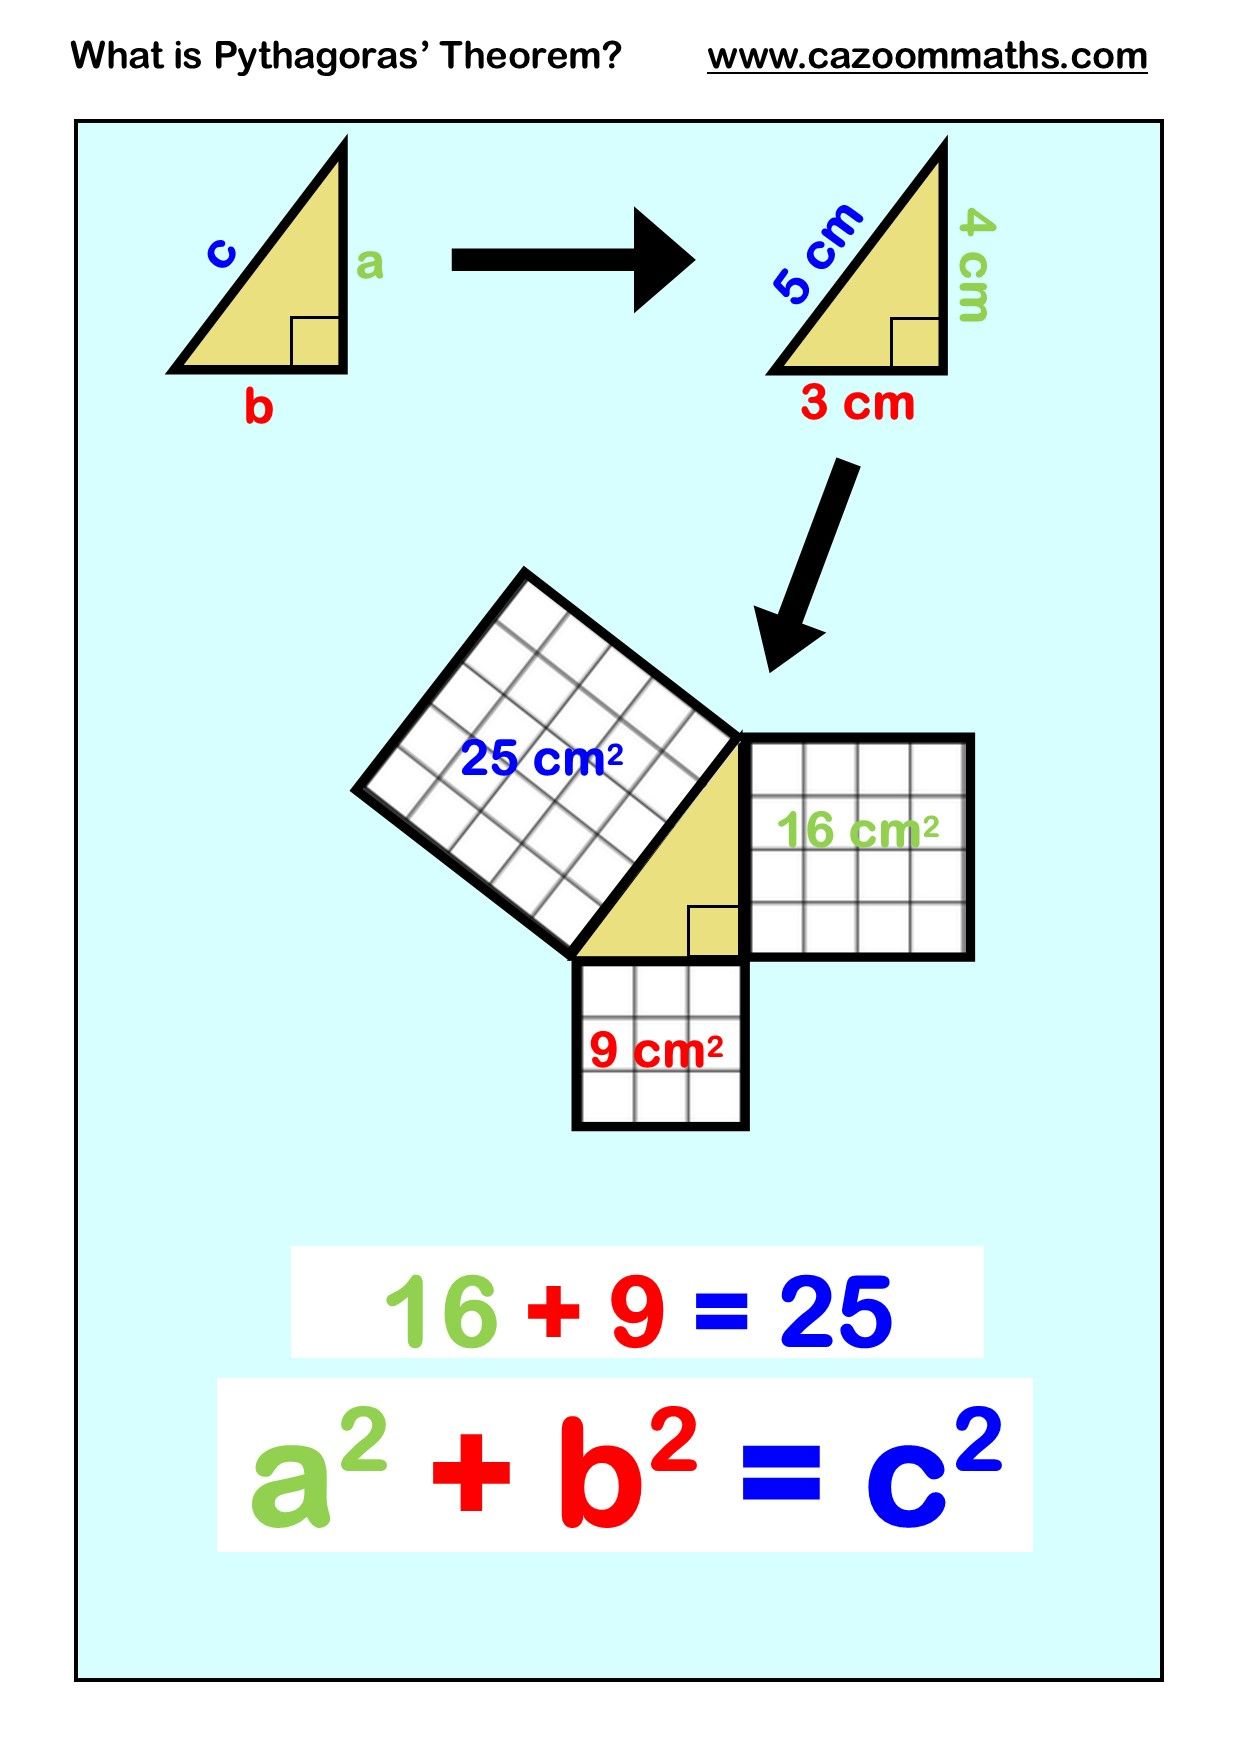 math pythagorean theorem The pythagorean theorem: finding the missing length geometry began to take shape thousands of years ago though any number of great minds of the past had a hand in building this branch of mathematics, you hear about some more than others.